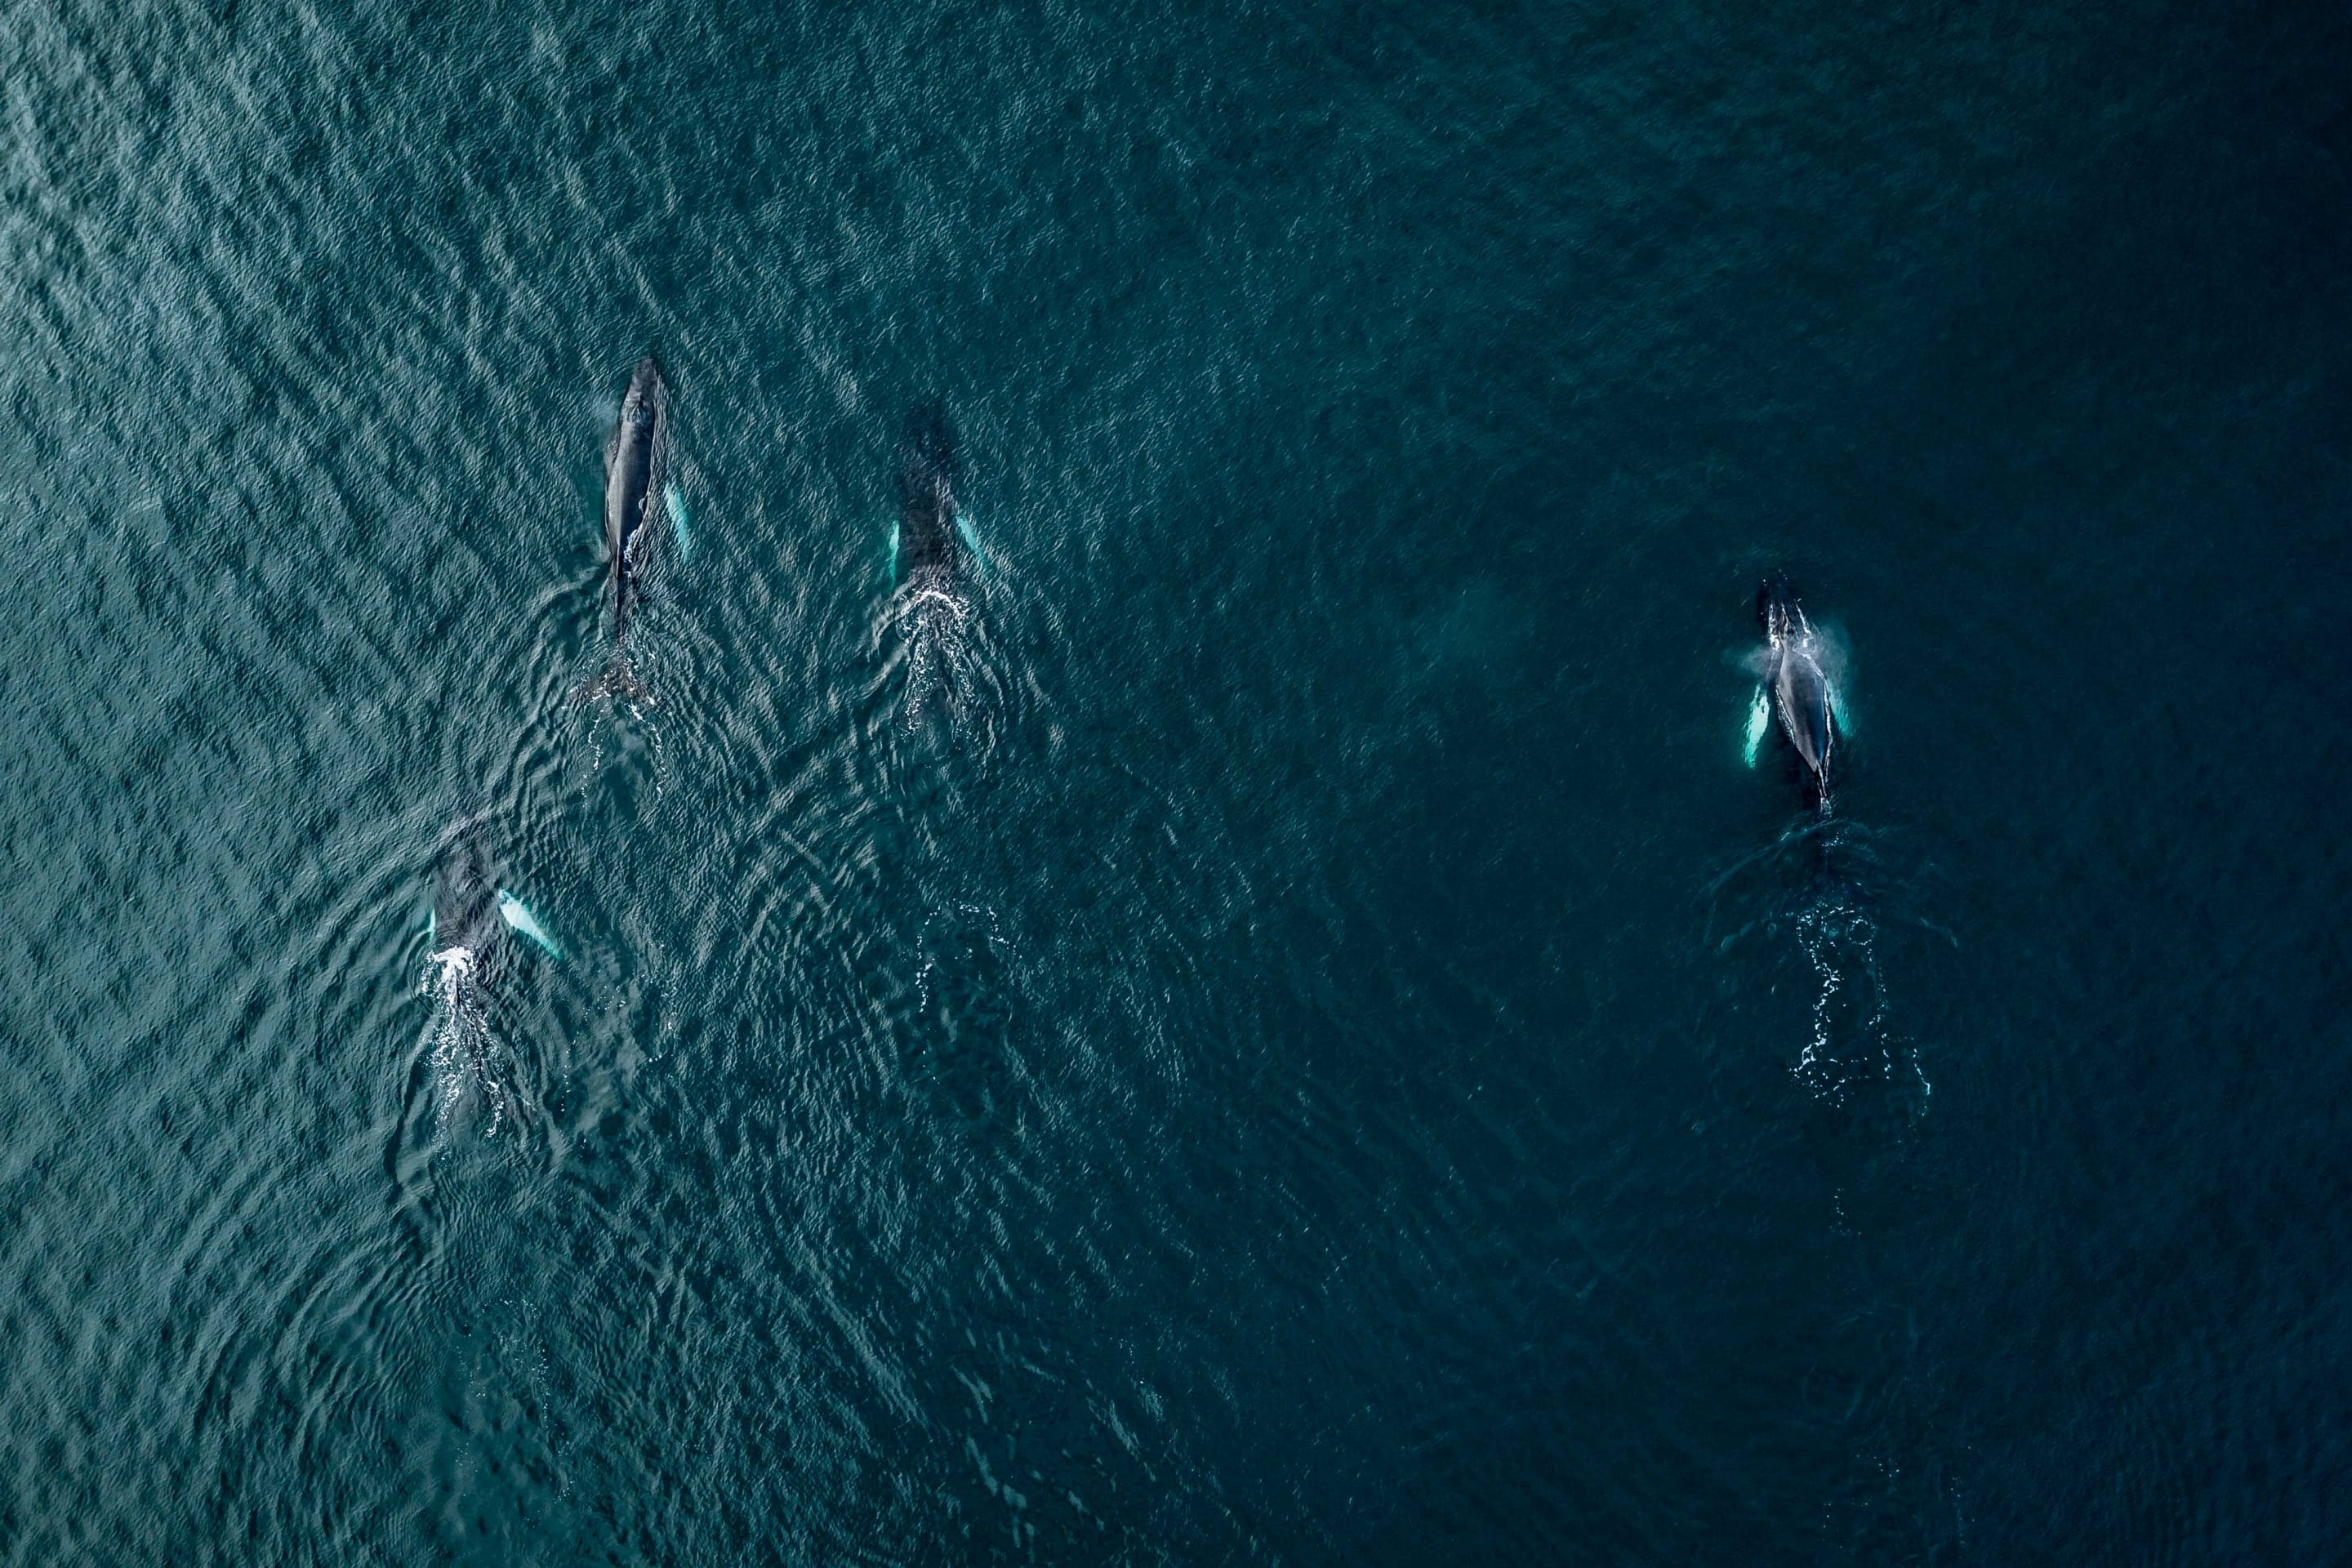 A school of humpback whales captured via drone in the ocean near the Icelandic coast playfully engaging with a ship by photographer Michael Schauer